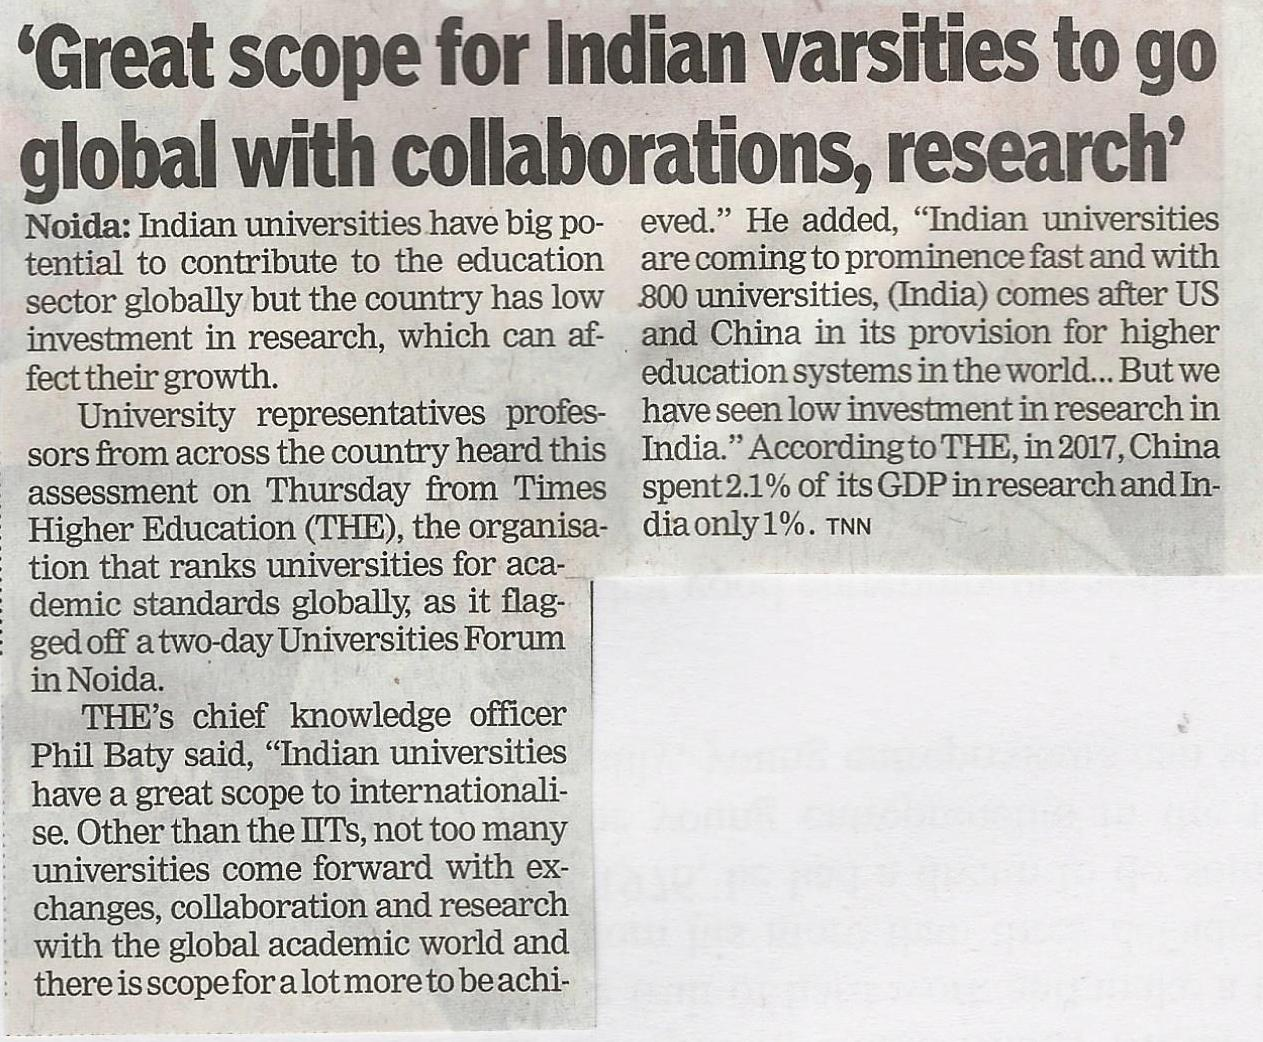 Times Higher Education – (THE) Indian Universities Forum commences at Amity University - Amity Events